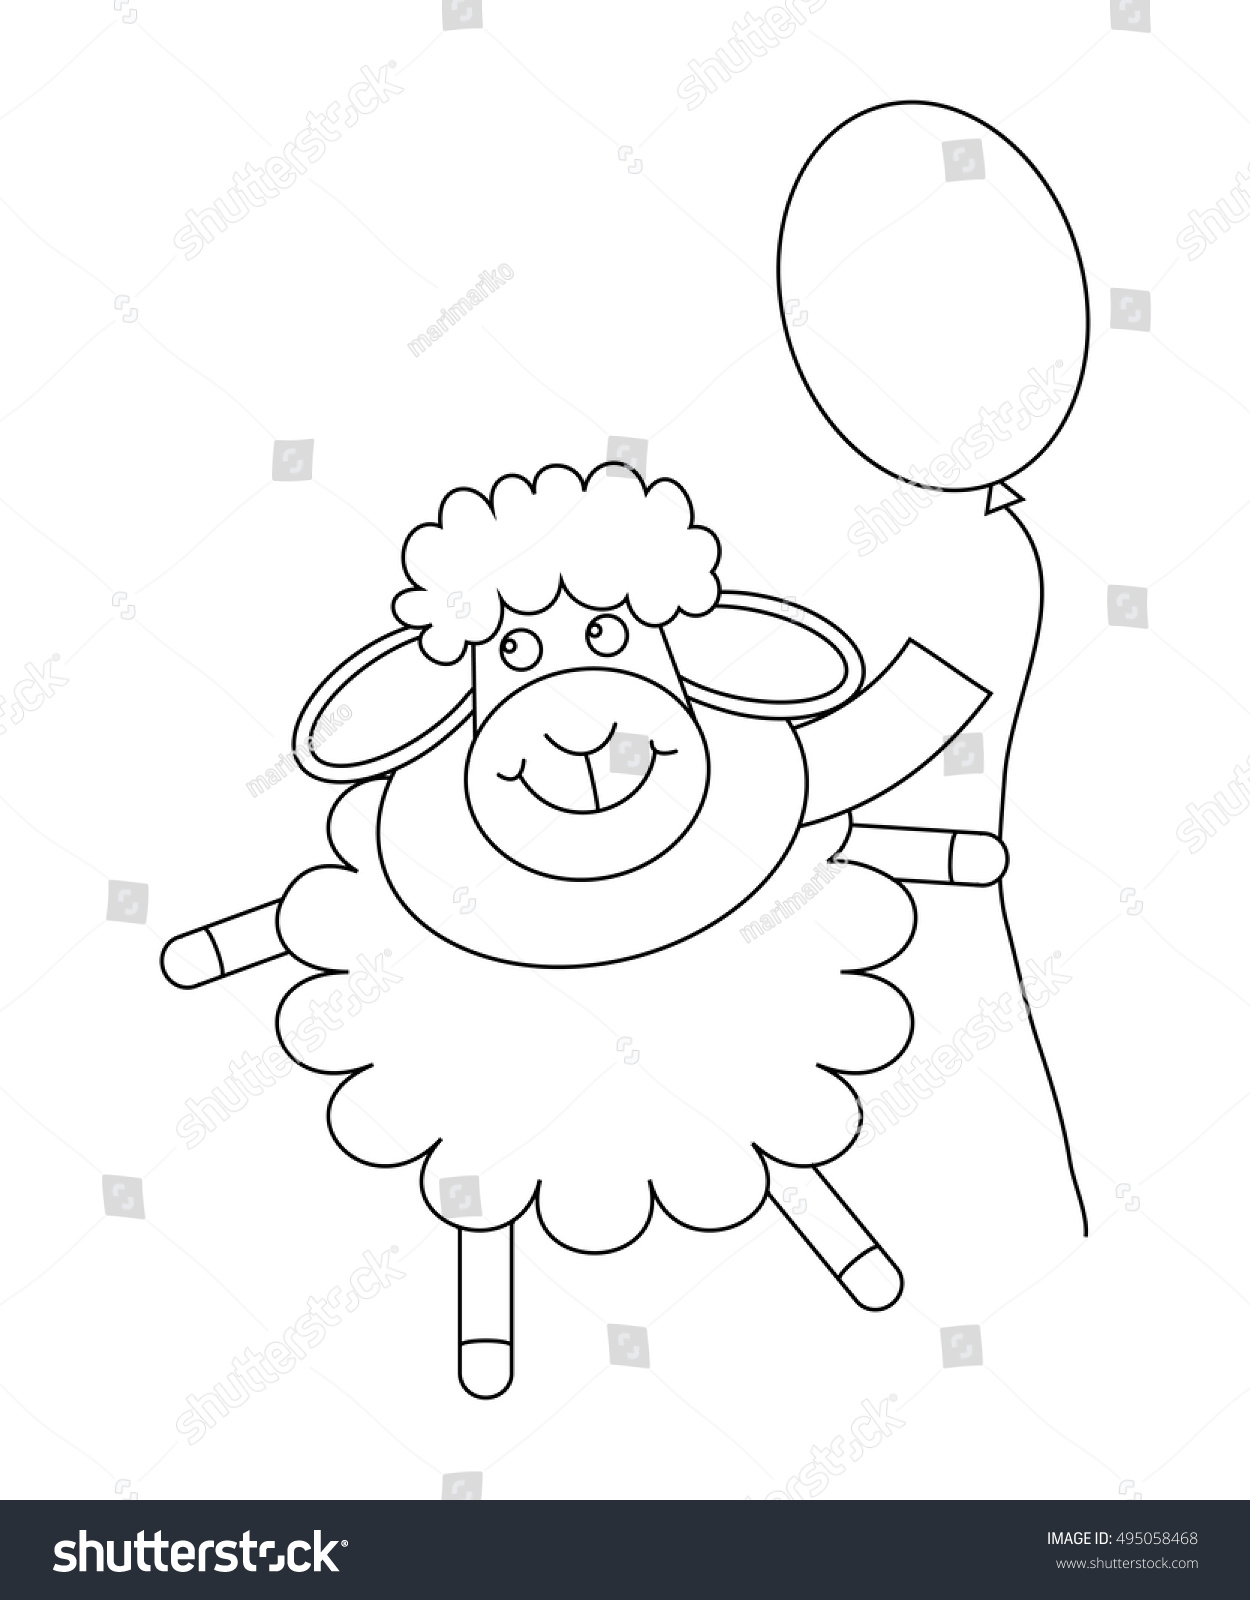 Cute Cartoon Sheep With Balloon Outlined Animal Coloring Page For Children Or Greeting Card